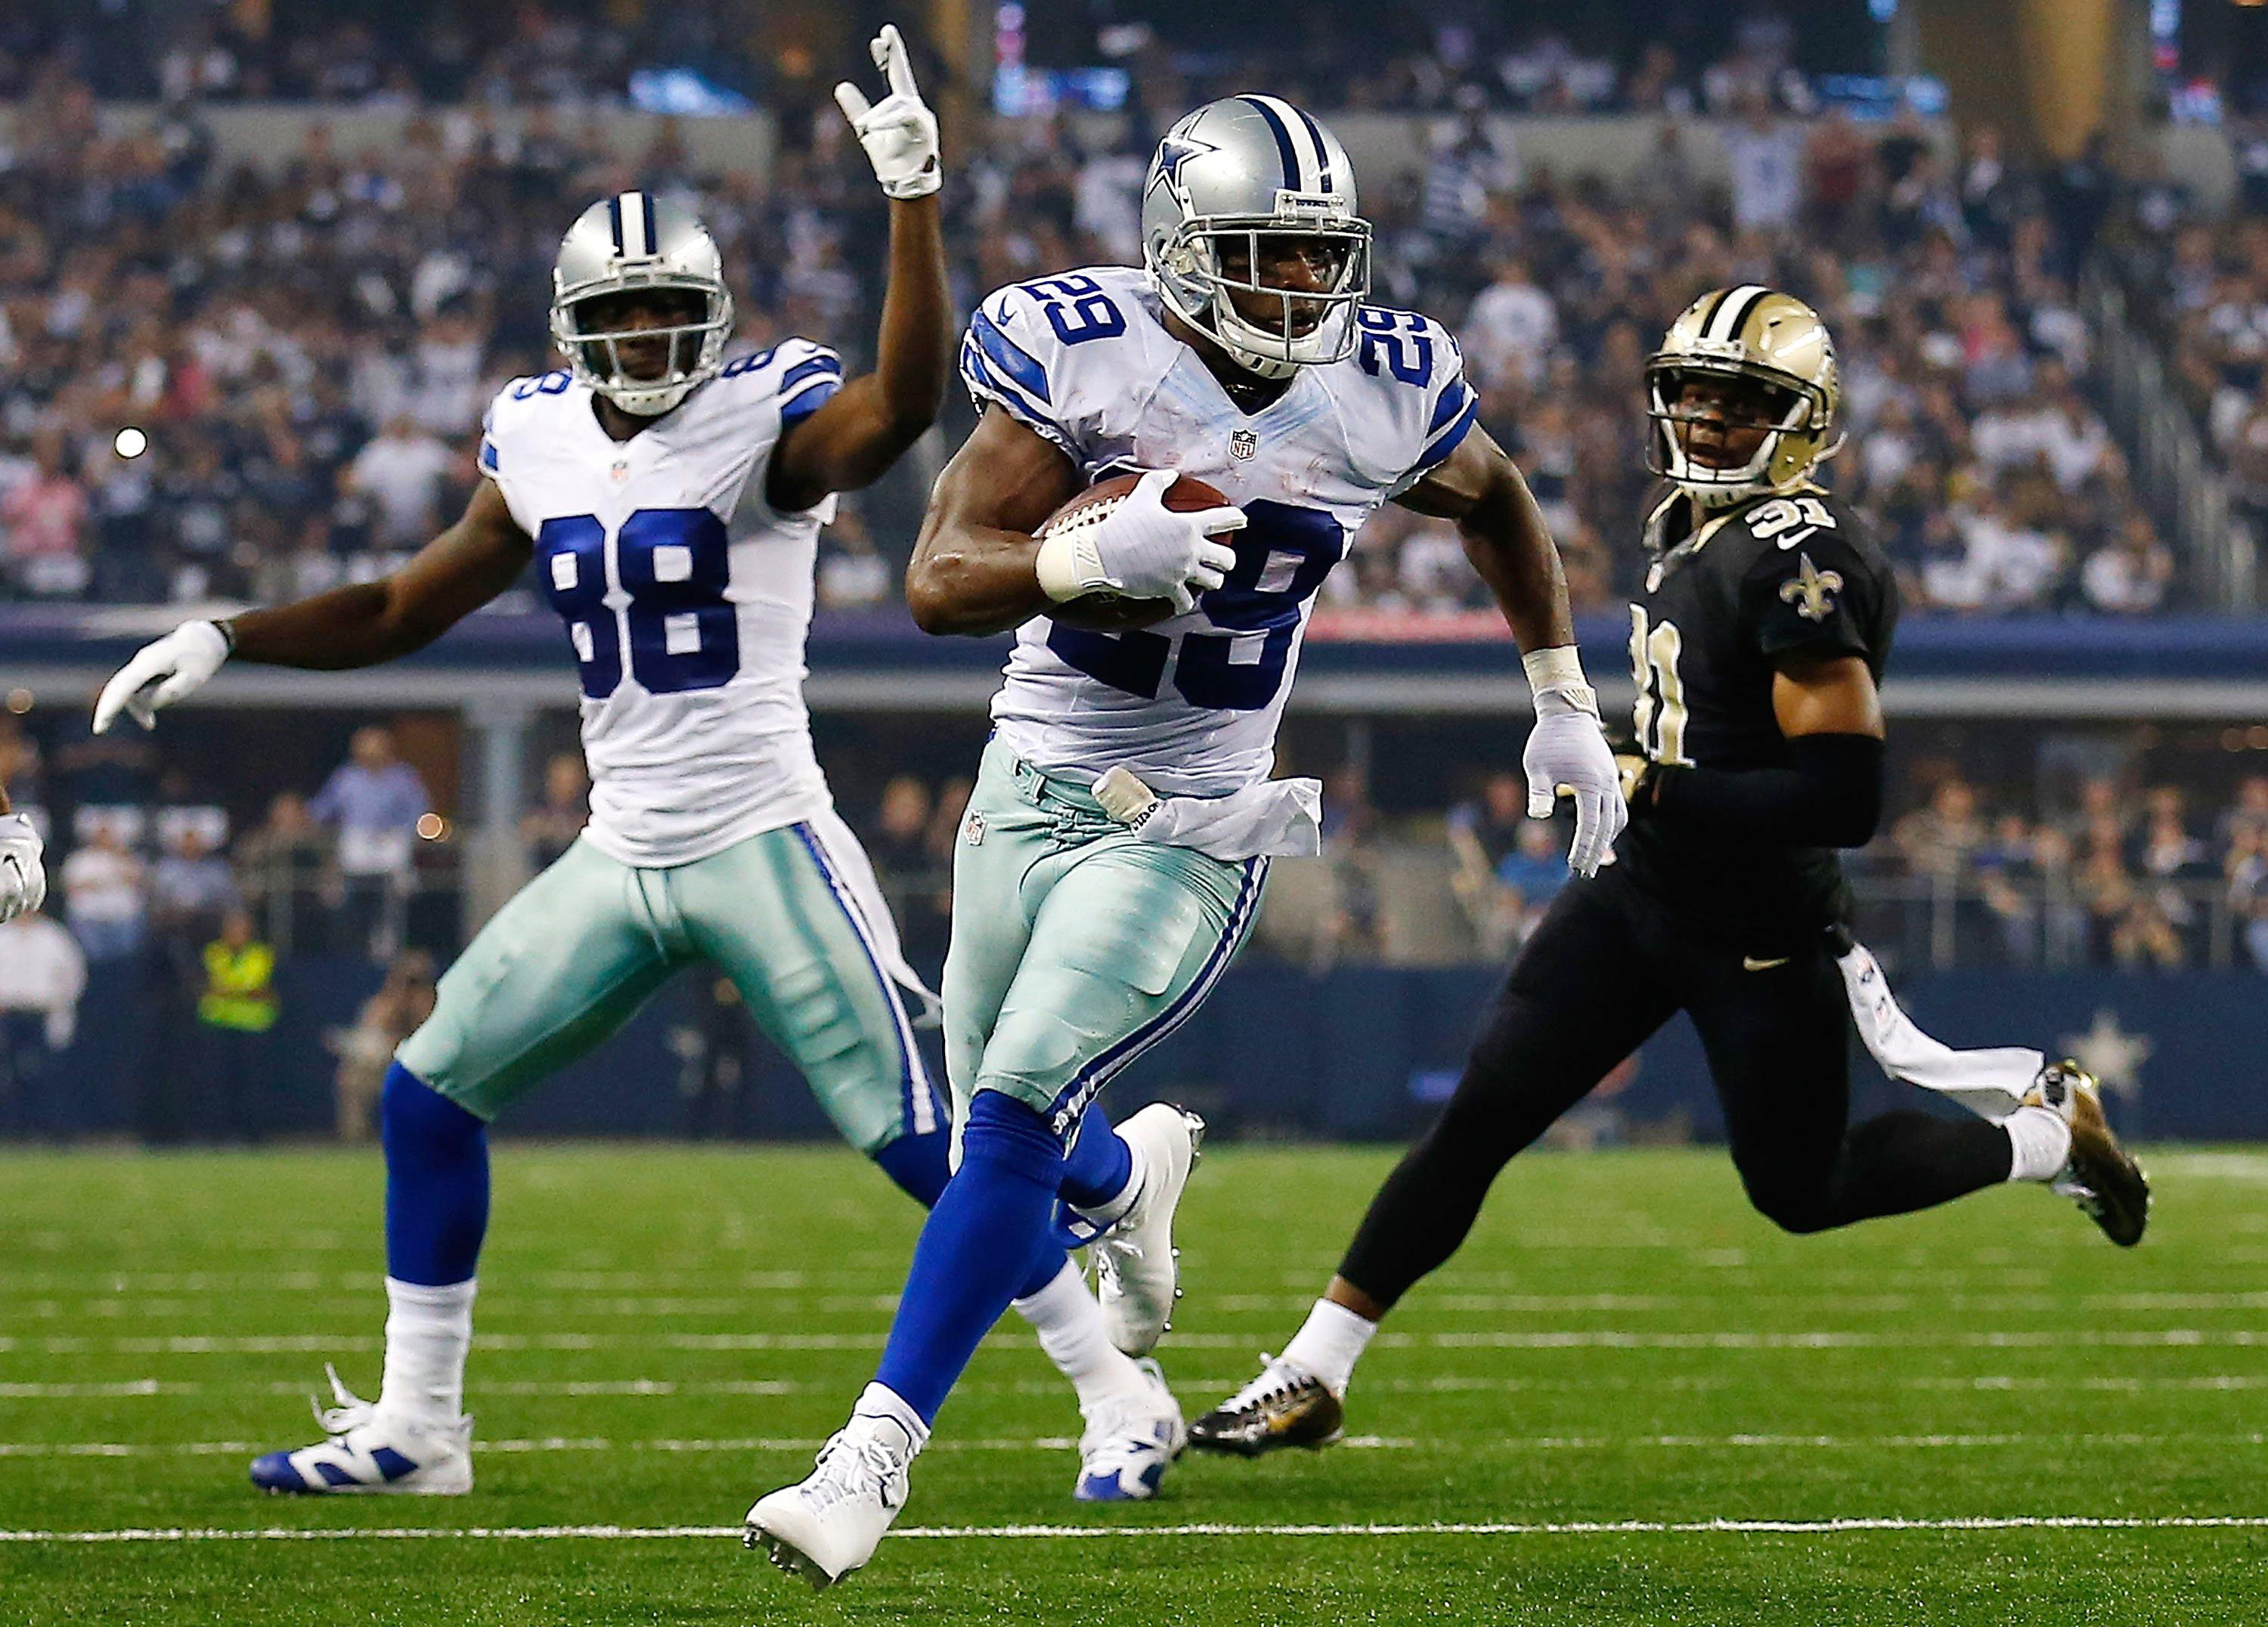 Cowboys Blog - Cowboys take the Saints by storm in 38-17 upset